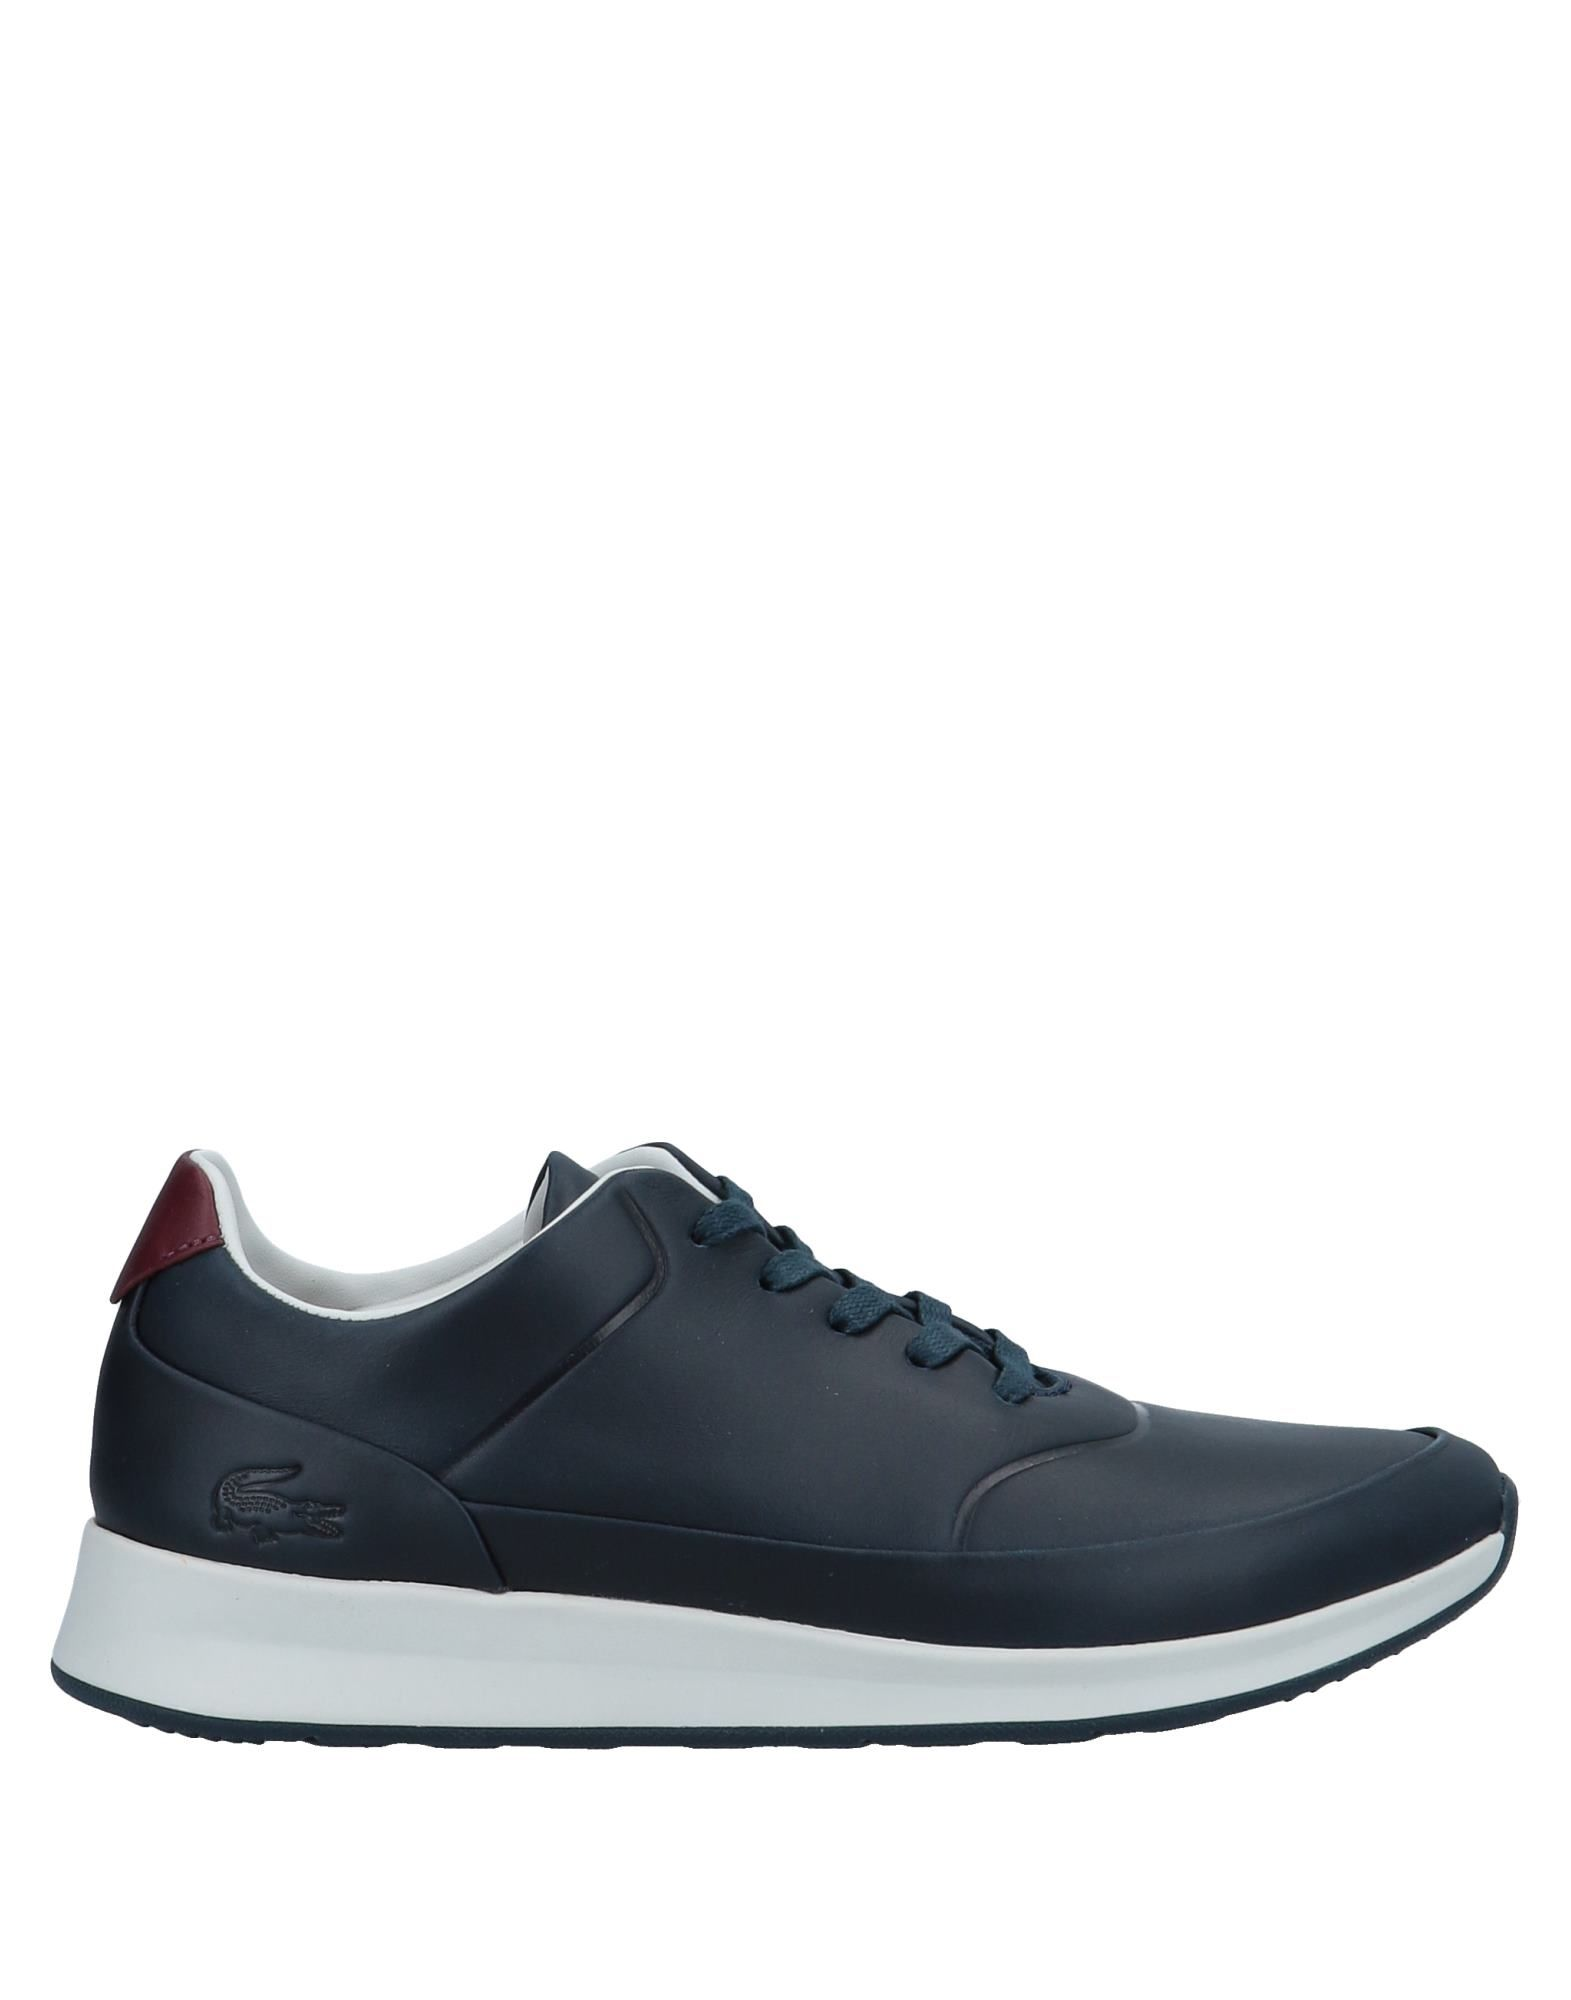 Lacoste Lacoste Lacoste Sneakers - Women Lacoste Sneakers online on  Canada - 11568428WT 8864f0